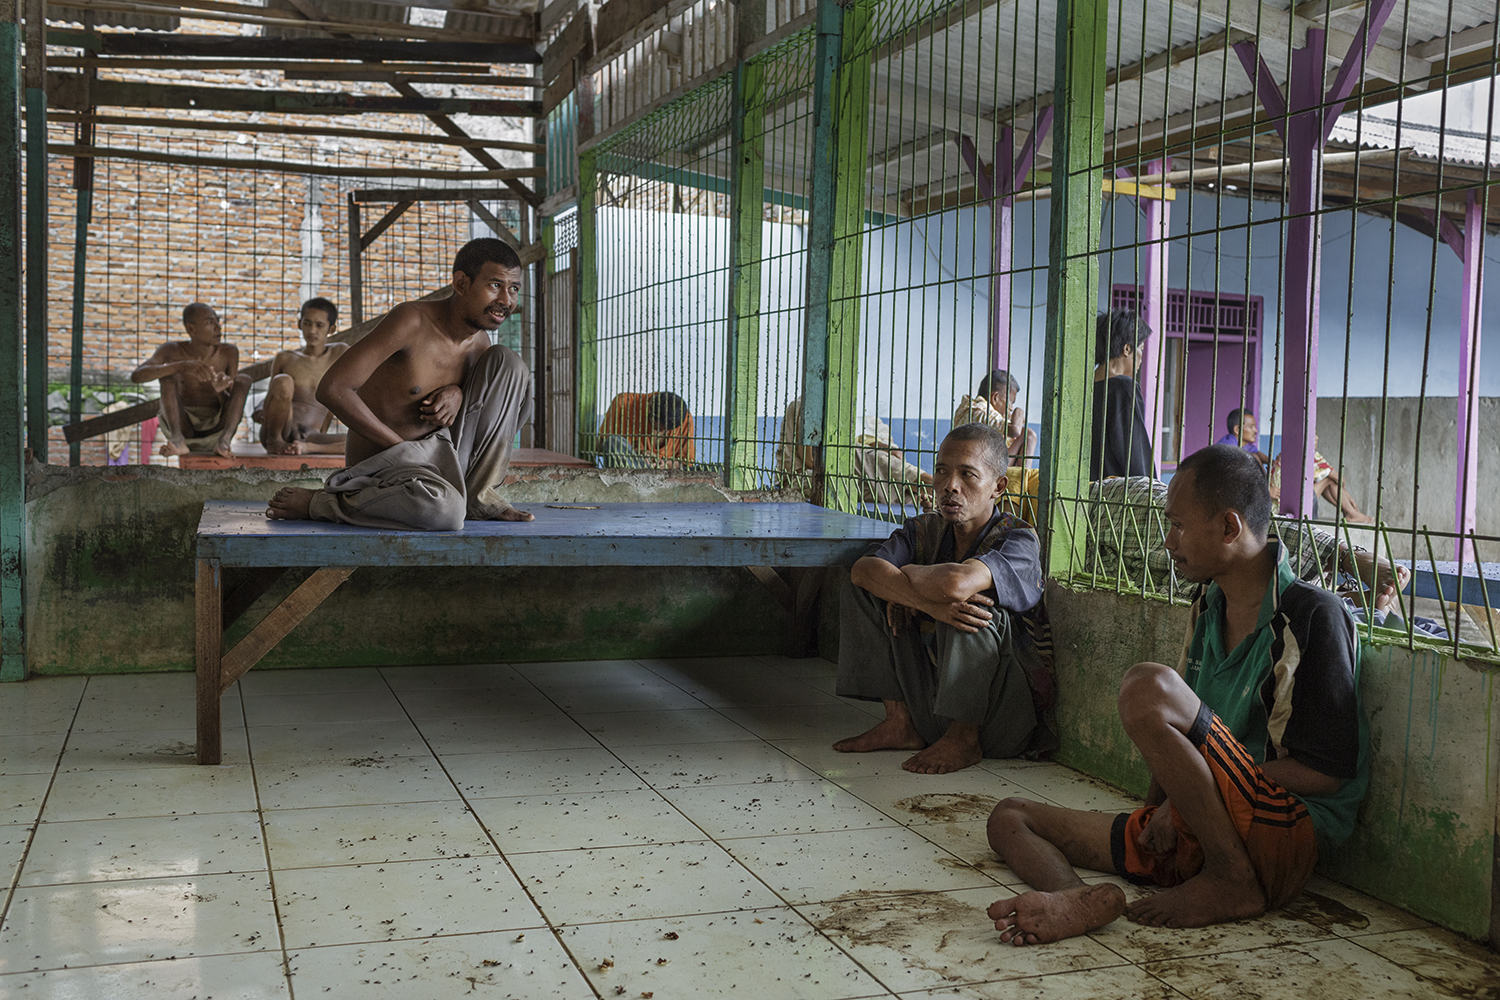 At Galuh, there is no actual housing although small rooms have been built for management and staff. Many of the men and woman stay in the large cage enclosed pavilion under a leaking roof without access to the outdoor toilets.